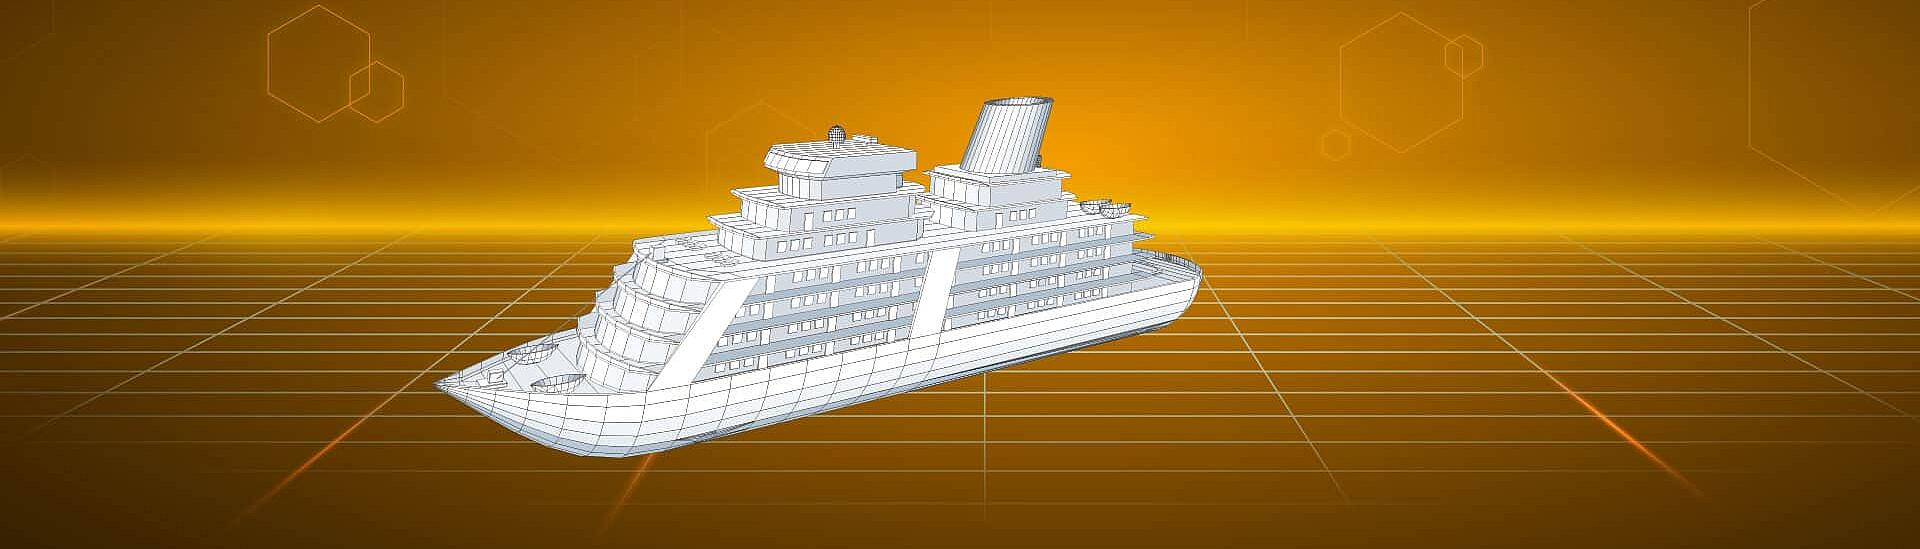 Animation Marine Technology by KTR Systems GmbH